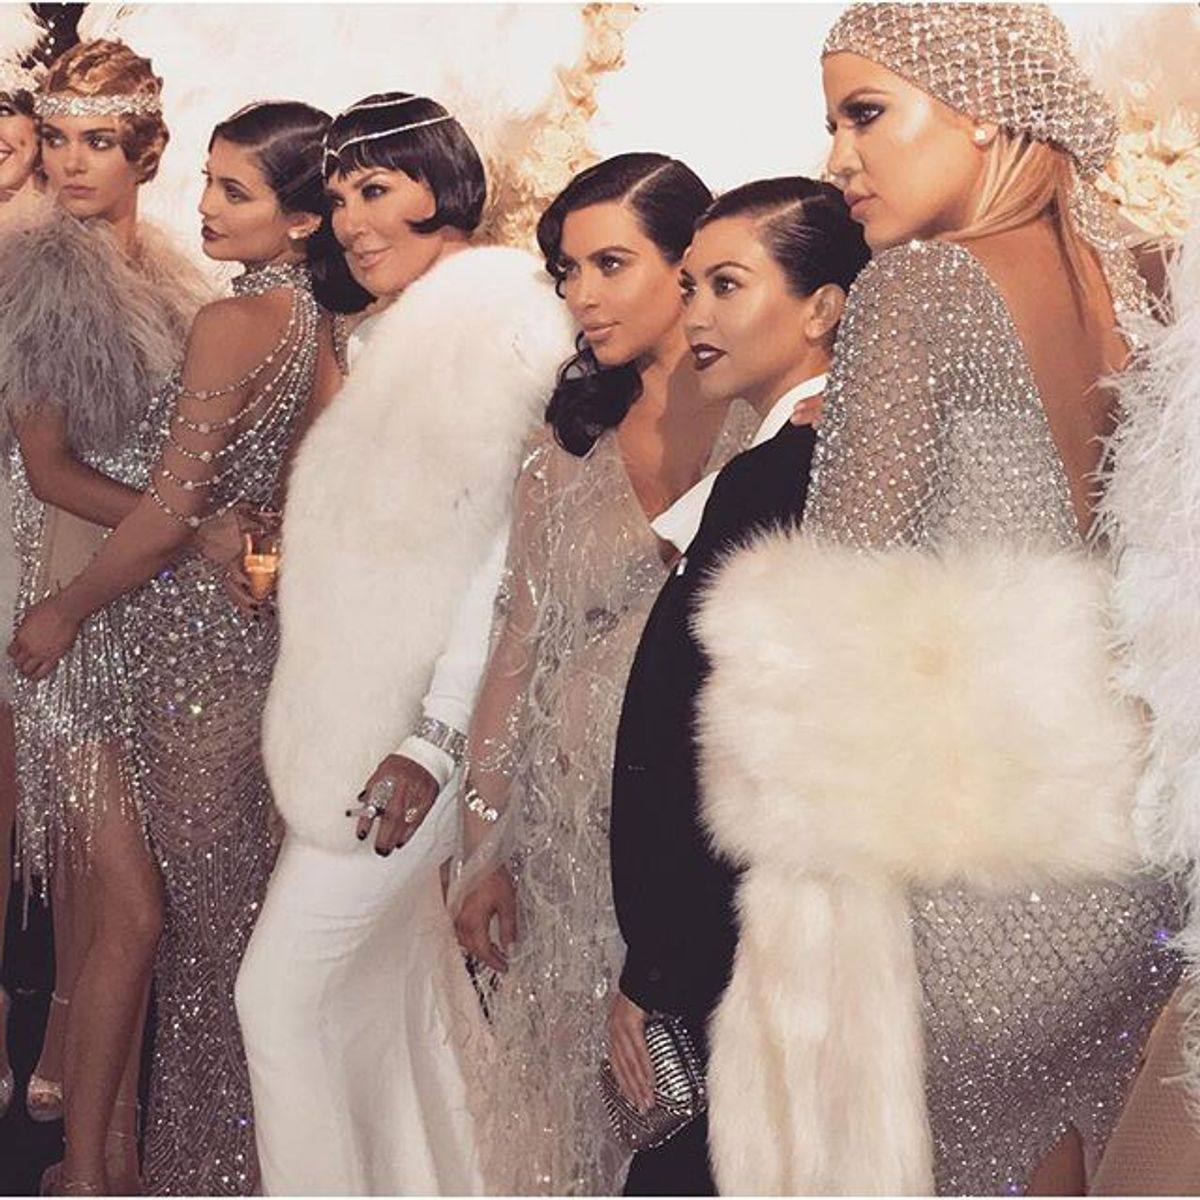 The Real Reasons Why The Kardashians Are Famous